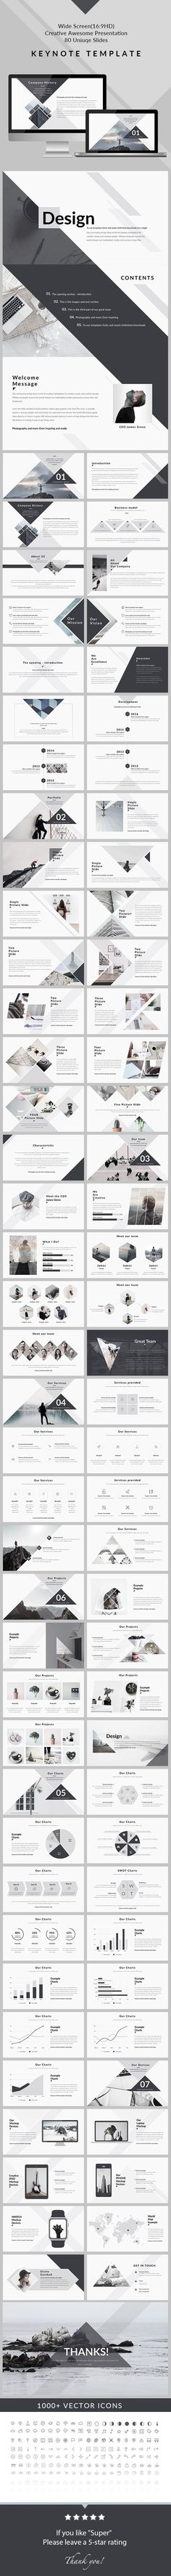 Design - Clean & Creative PowerPoint Presentation by General Description Screen Size 80 unique slides Free Font Used No Animation Template Creative Slides Clean style Business Sl Creative Powerpoint Presentations, Powerpoint Presentation Templates, Keynote Template, Graphisches Design, Slide Design, Layout Design, Clean Design, Creative Design, Keynote Presentation